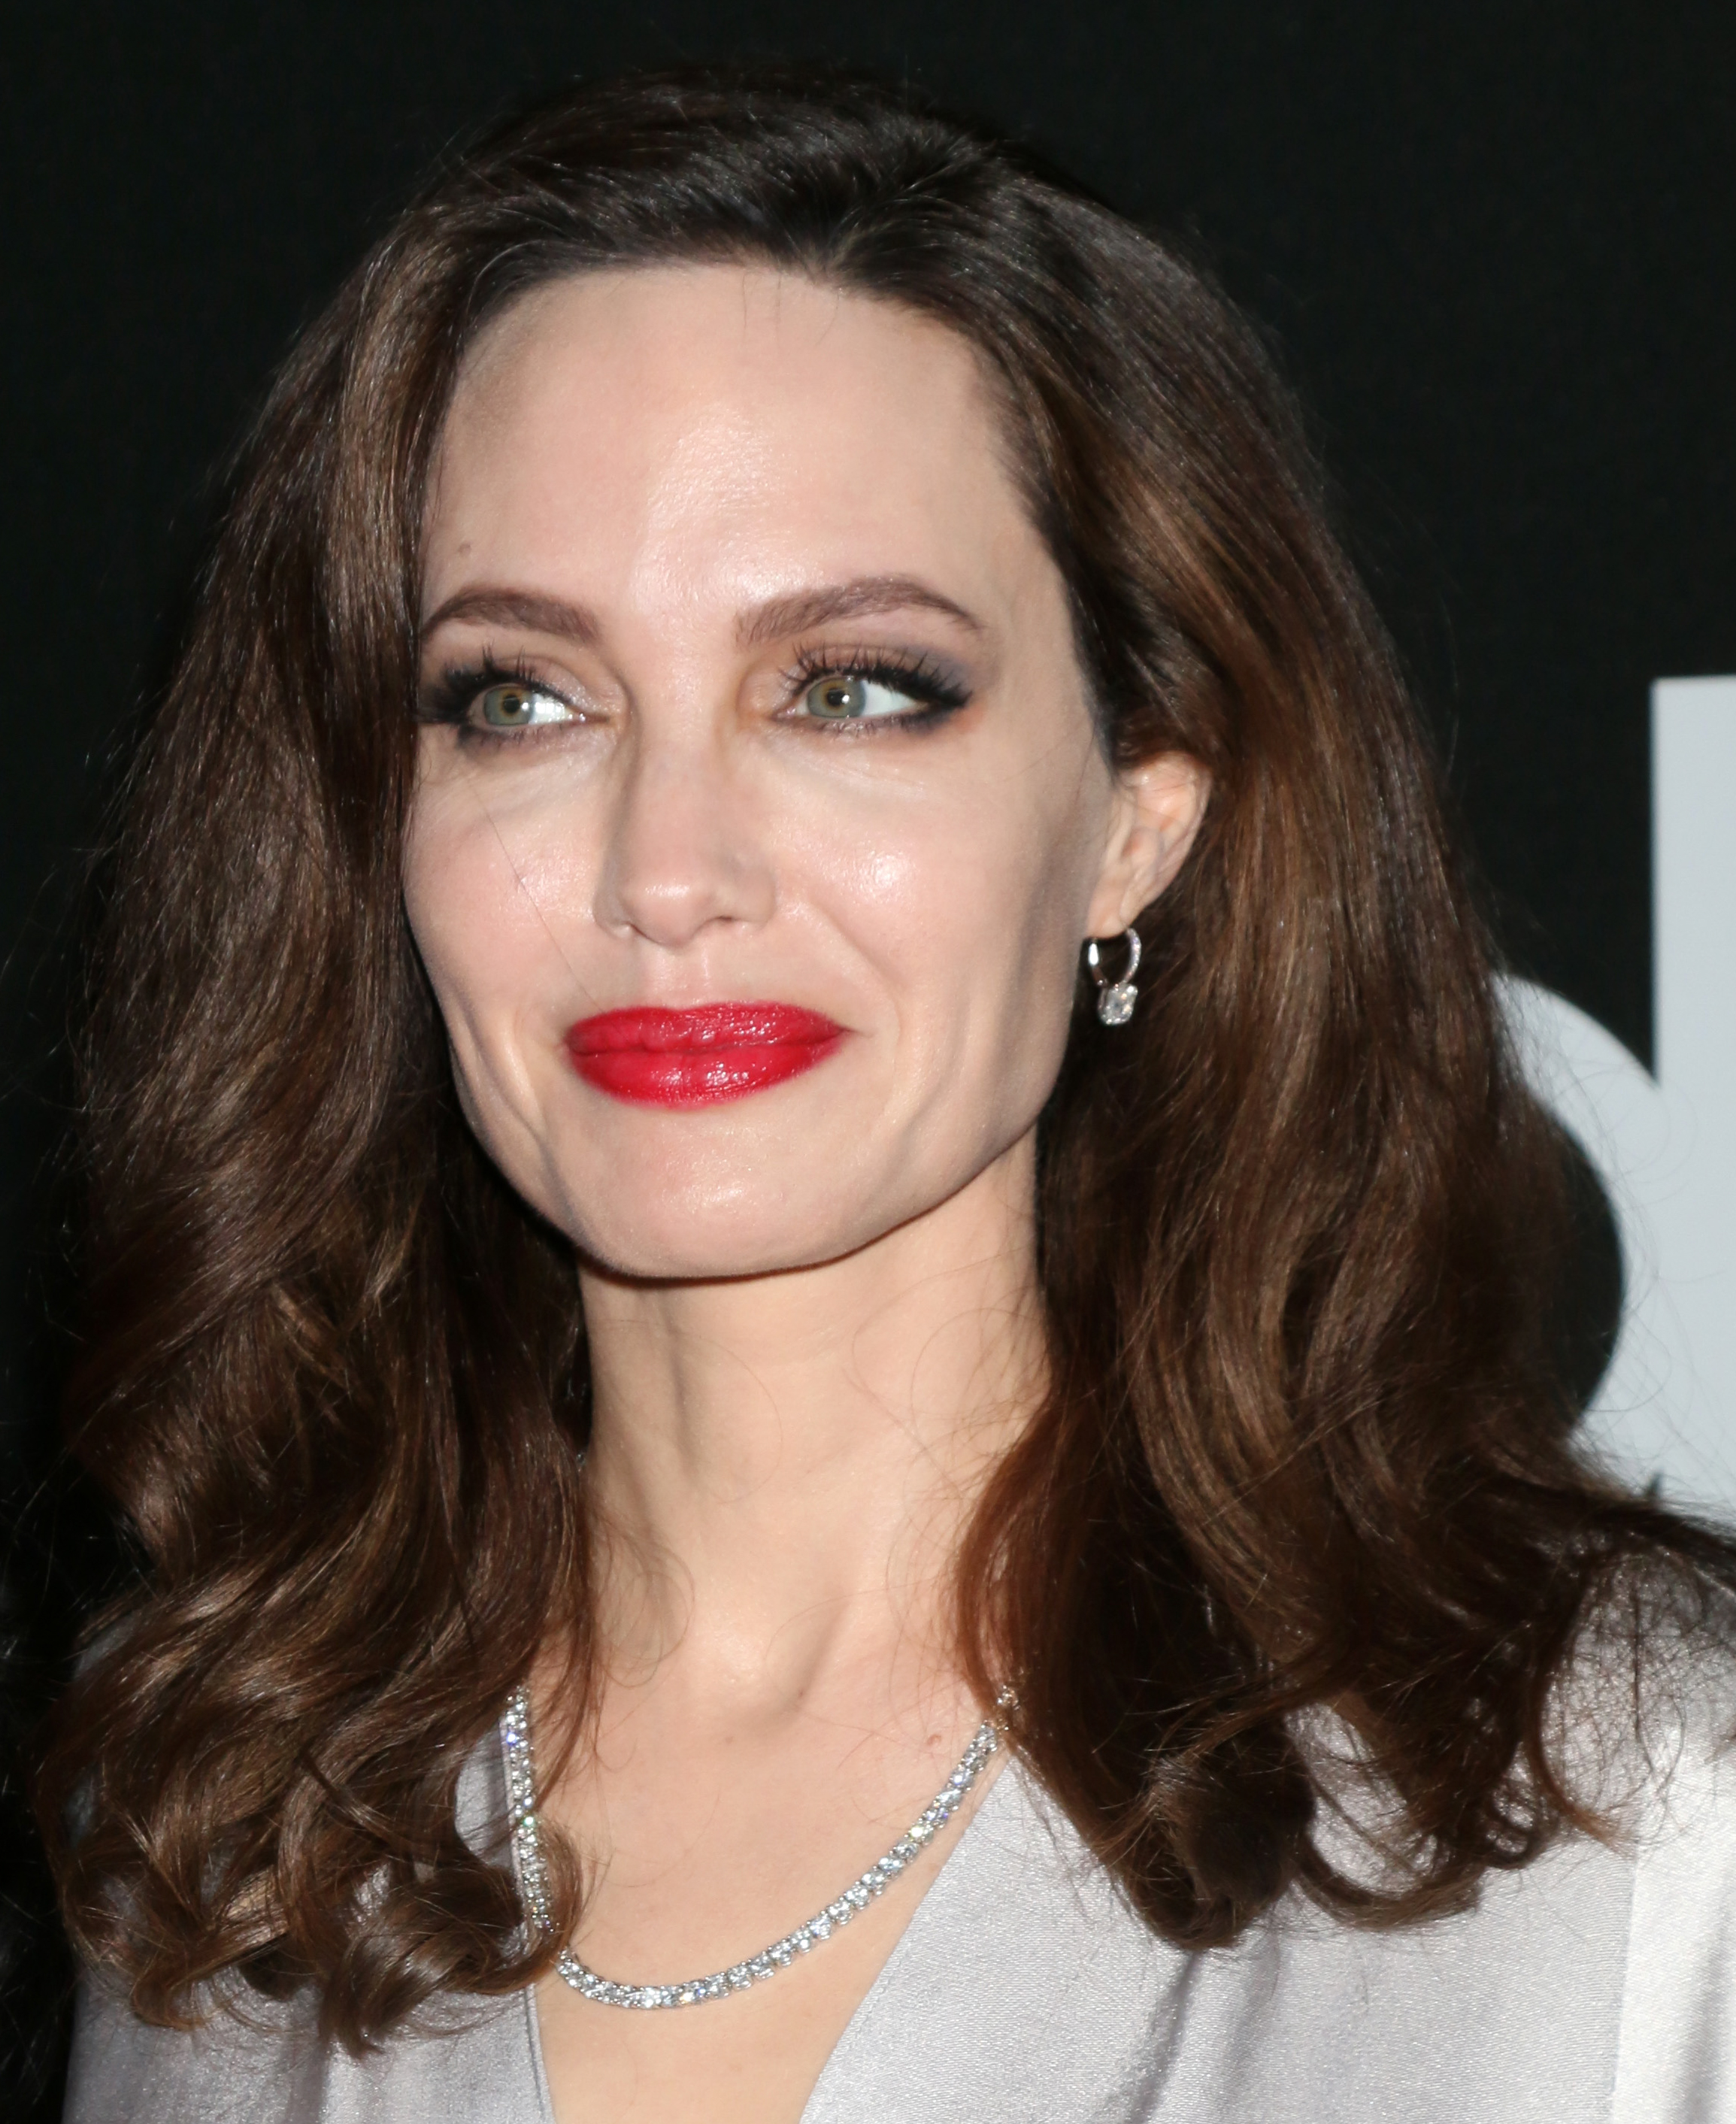 Celebrities arrive at the 21st Annual Hollywood Film Awards at The Beverly Hilton Hotel in Beverly Hills, California. <P> Pictured: Angelina Jolie <B>Ref: SPL1617147  051117  </B><BR/> Picture by: @ParisaMichelle / Splash News<BR/> </P><P> <B>Splash News and Pictures</B><BR/> Los Angeles:310-821-2666<BR/> New York:212-619-2666<BR/> London:870-934-2666<BR/> <span id=